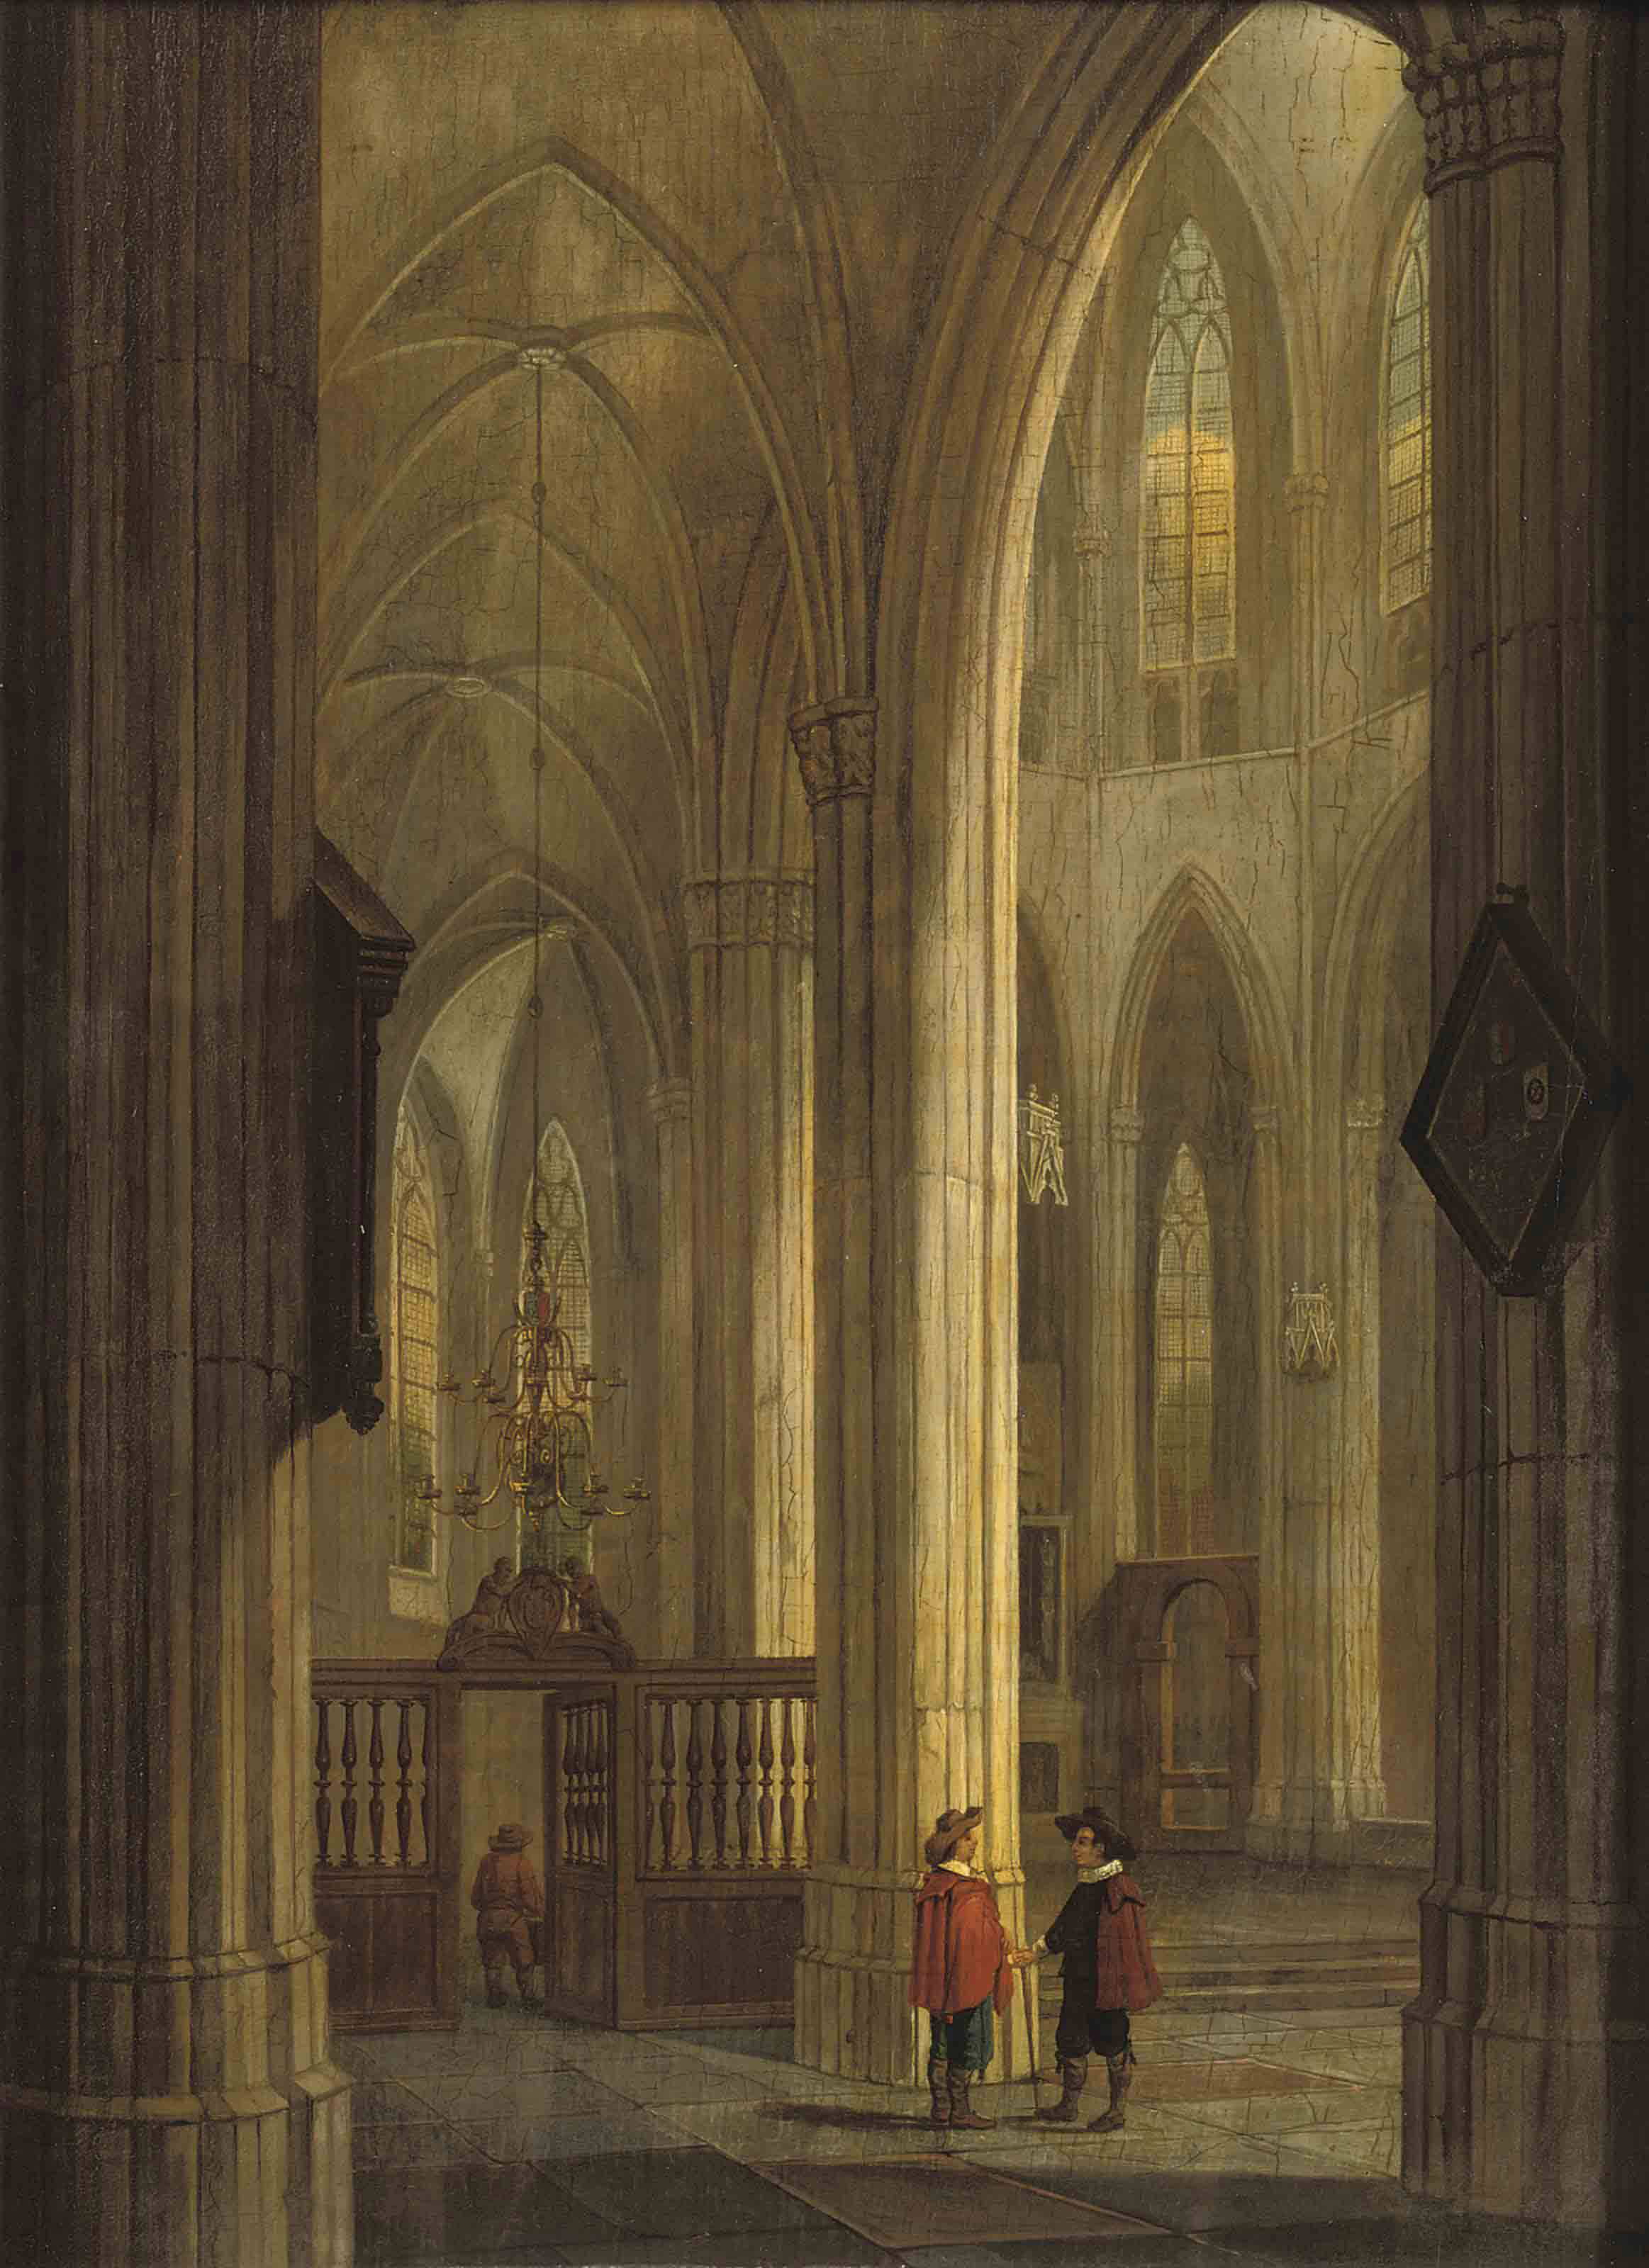 A church interior with figures conversing